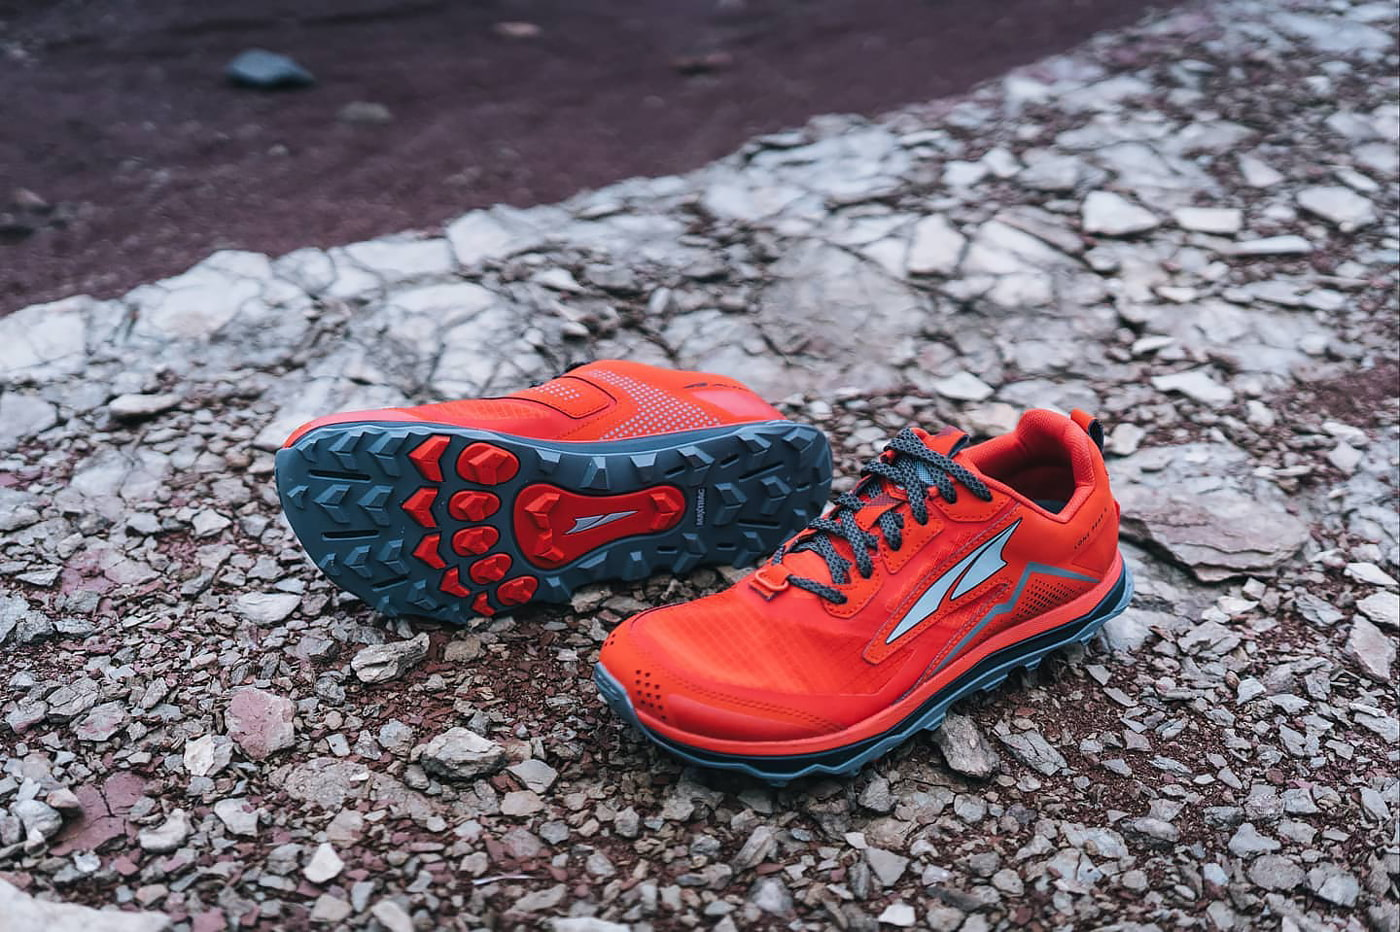 Hiking Shoes for Travel